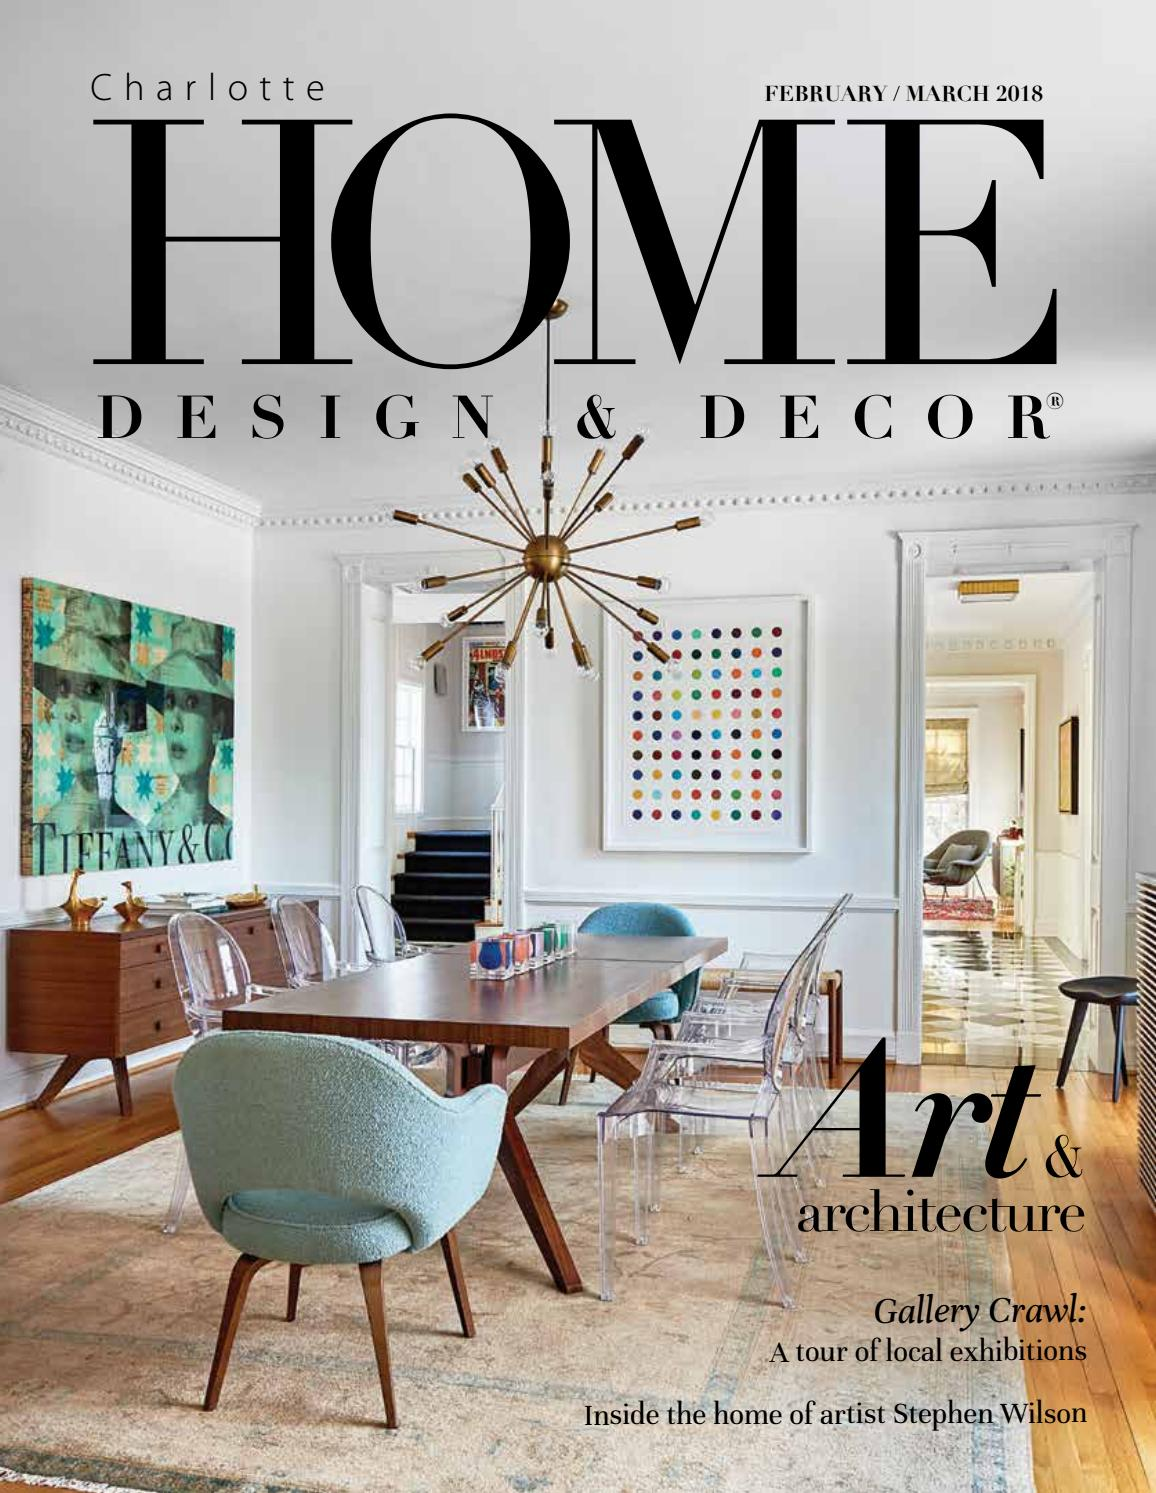 February/March 2018 by Home Design & Decor Magazine - issuu